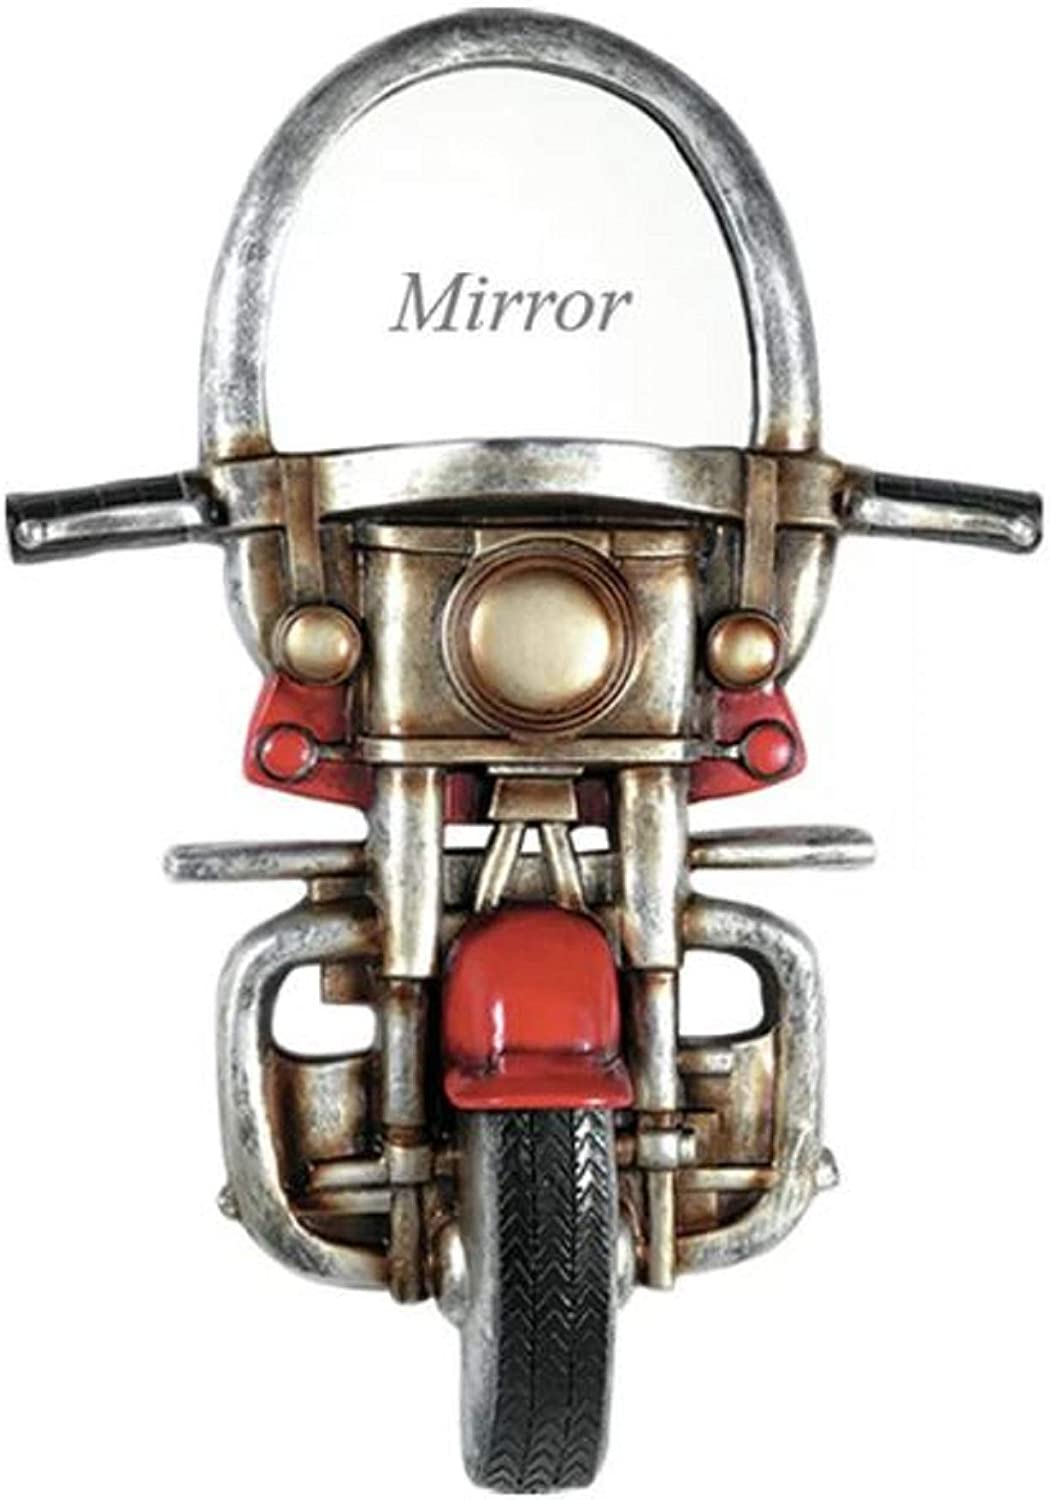 House Decoration Modern Accent Mirror. Cleaves Motorcycle House Decoration Modern Accent Mirror Metal Frame greenical Wall Mounted Grey